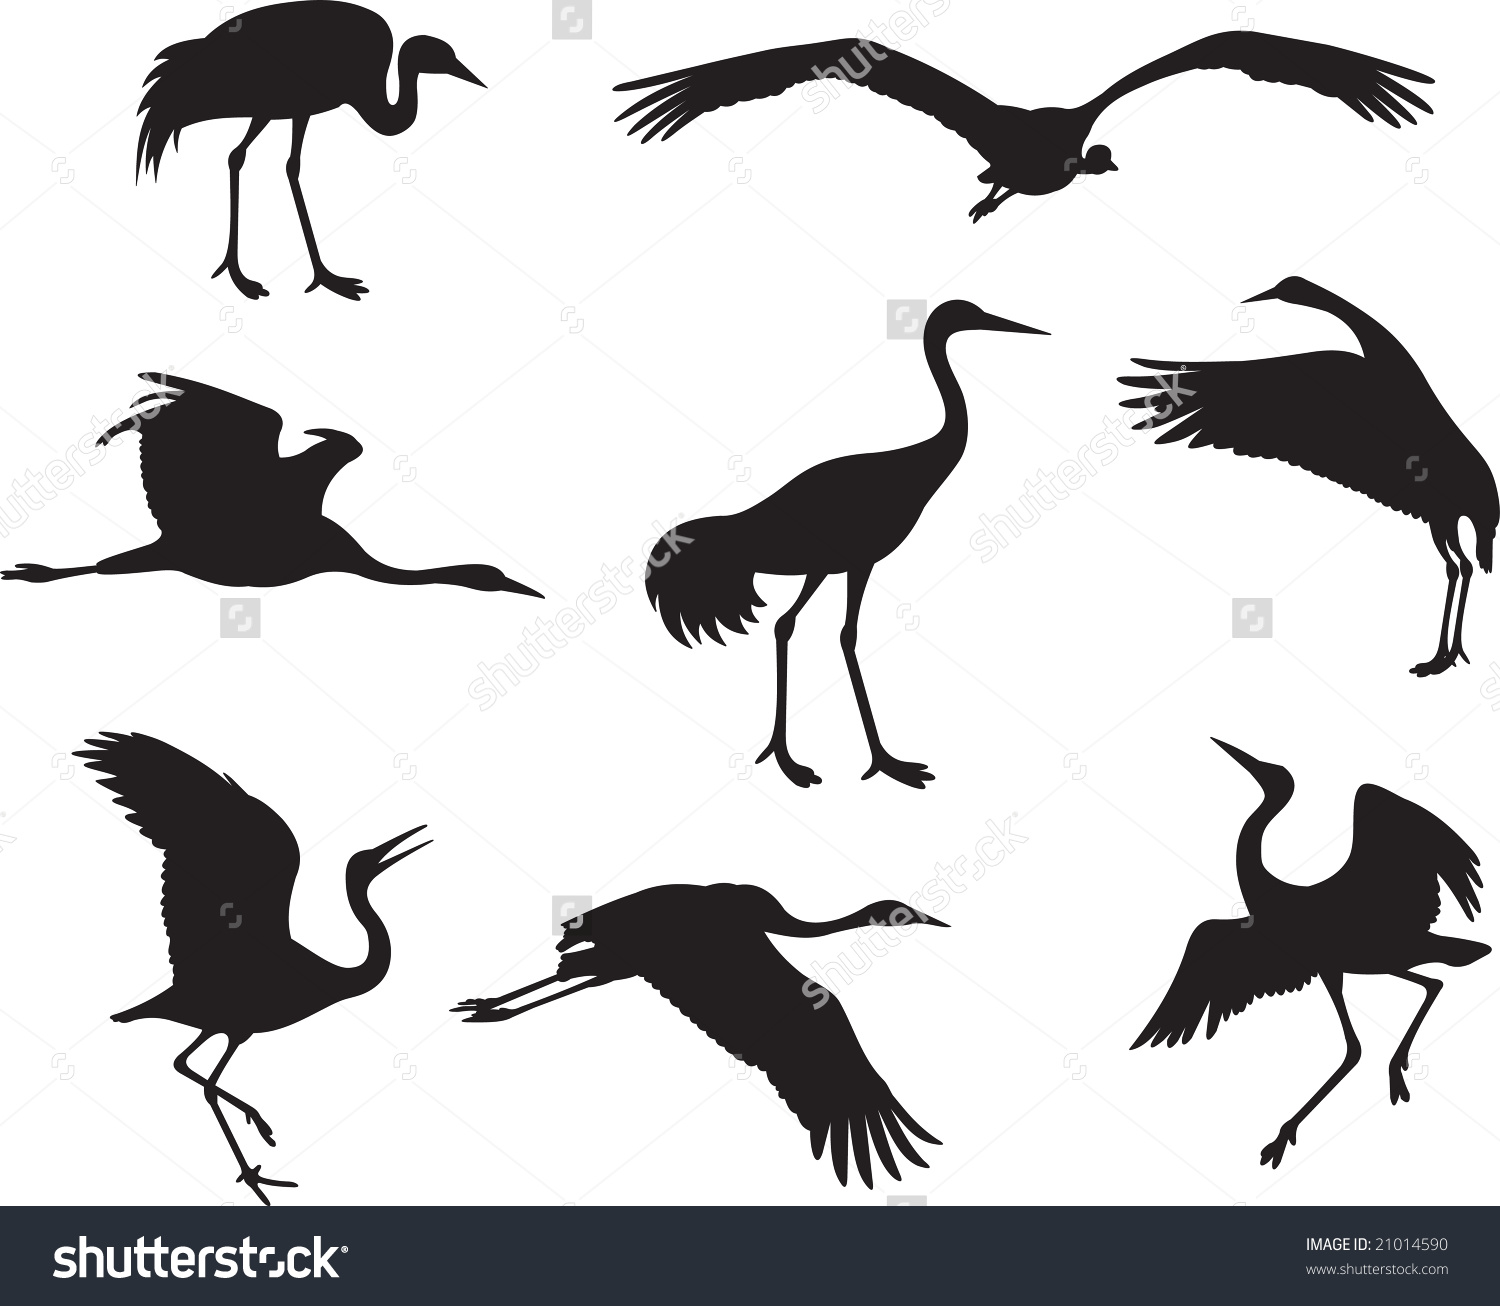 Japanese Crane clipart #3, Download drawings